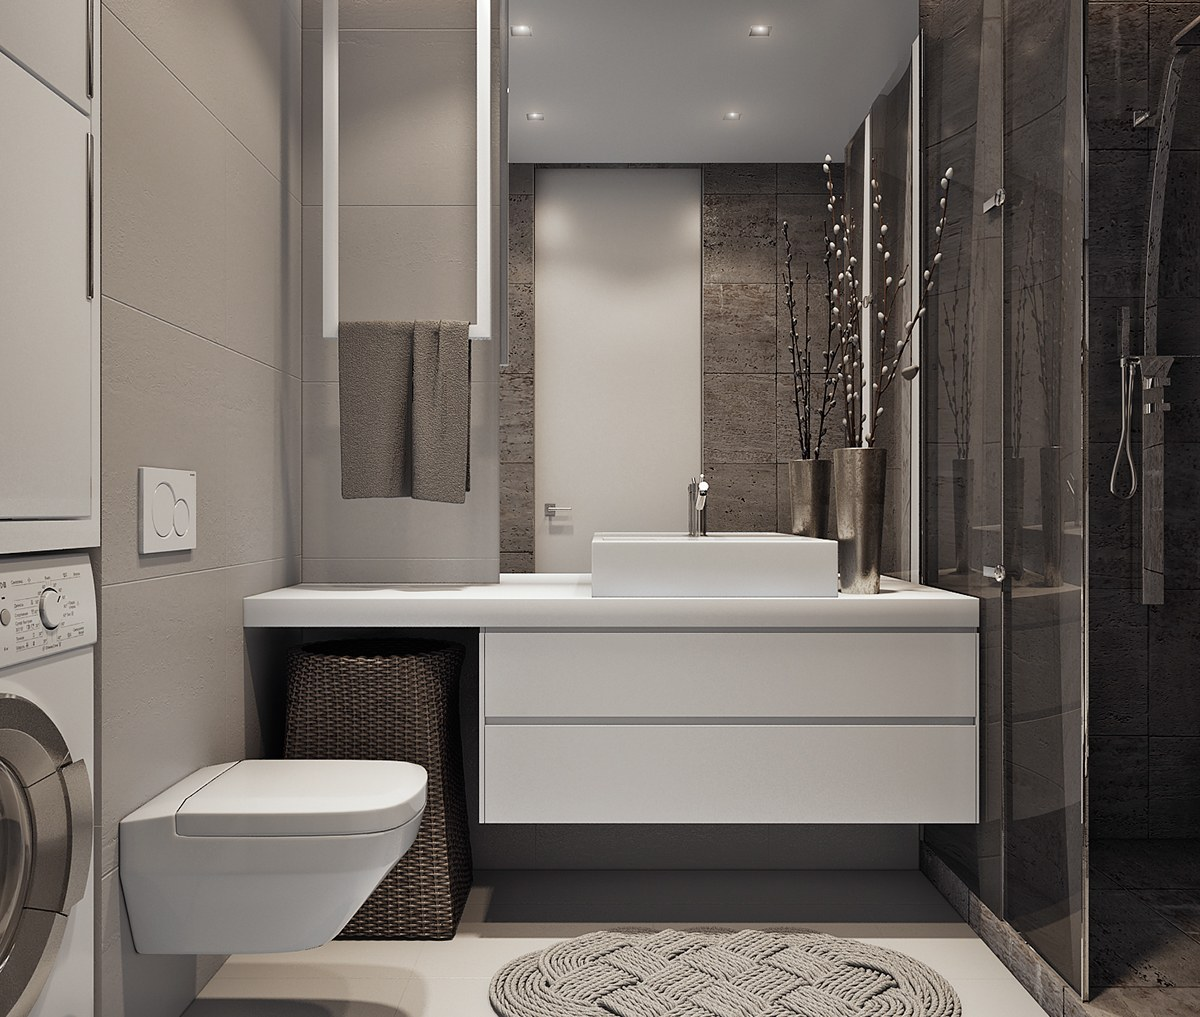 Space-efficient ideas for modern bathrooms